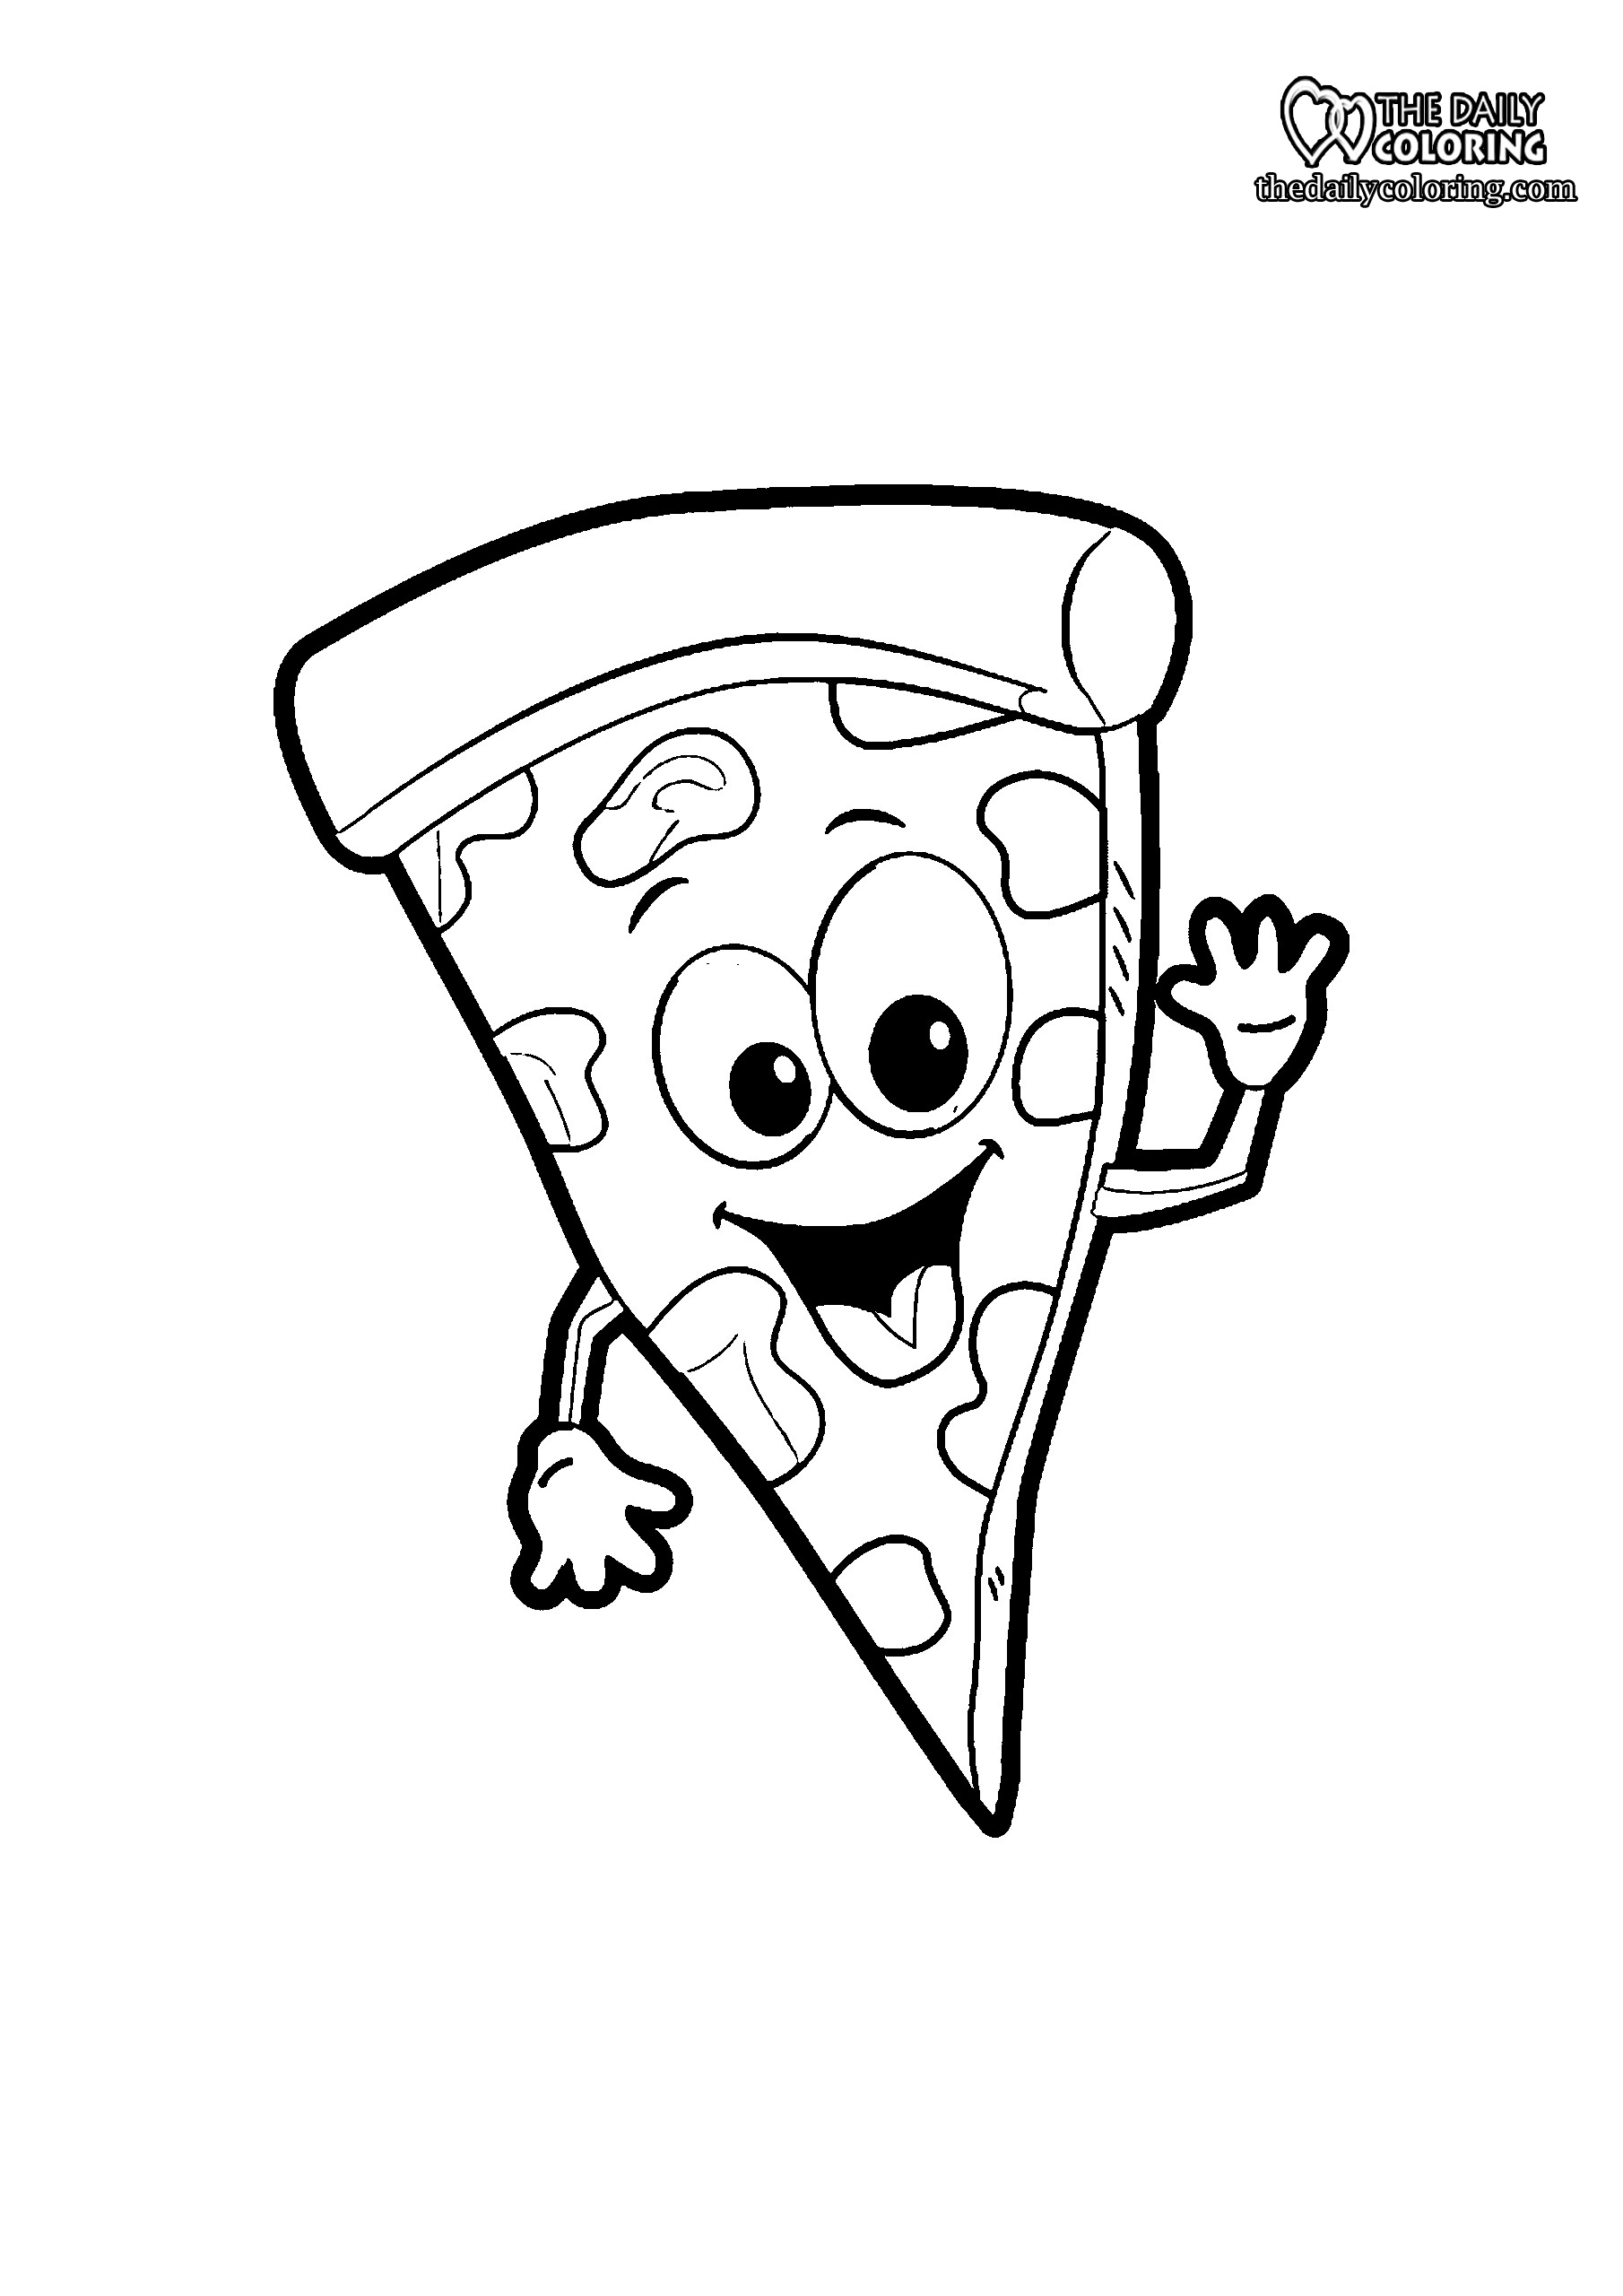 pizza-slices-coloring-page